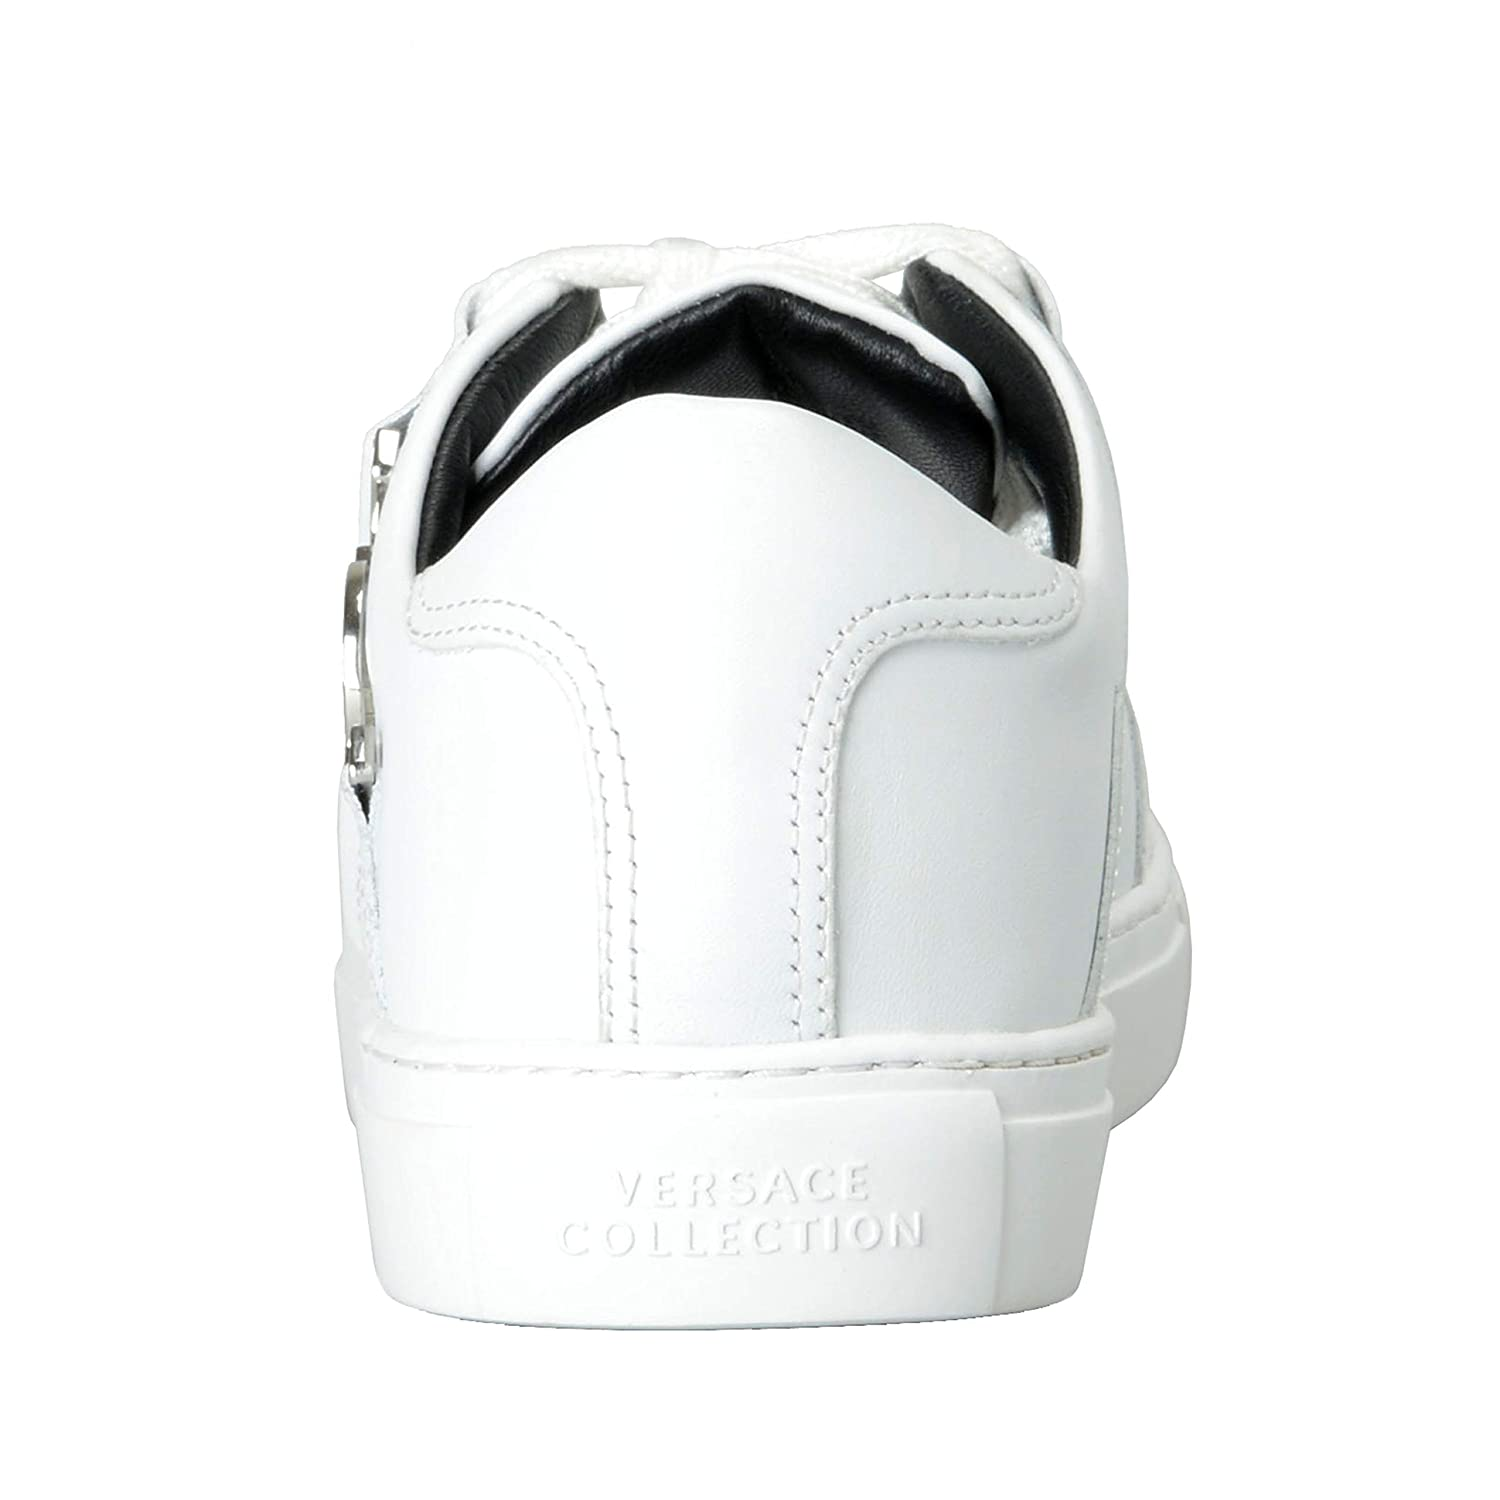 Amazon.com: Versace Collection Men's White Leather Fashion ...